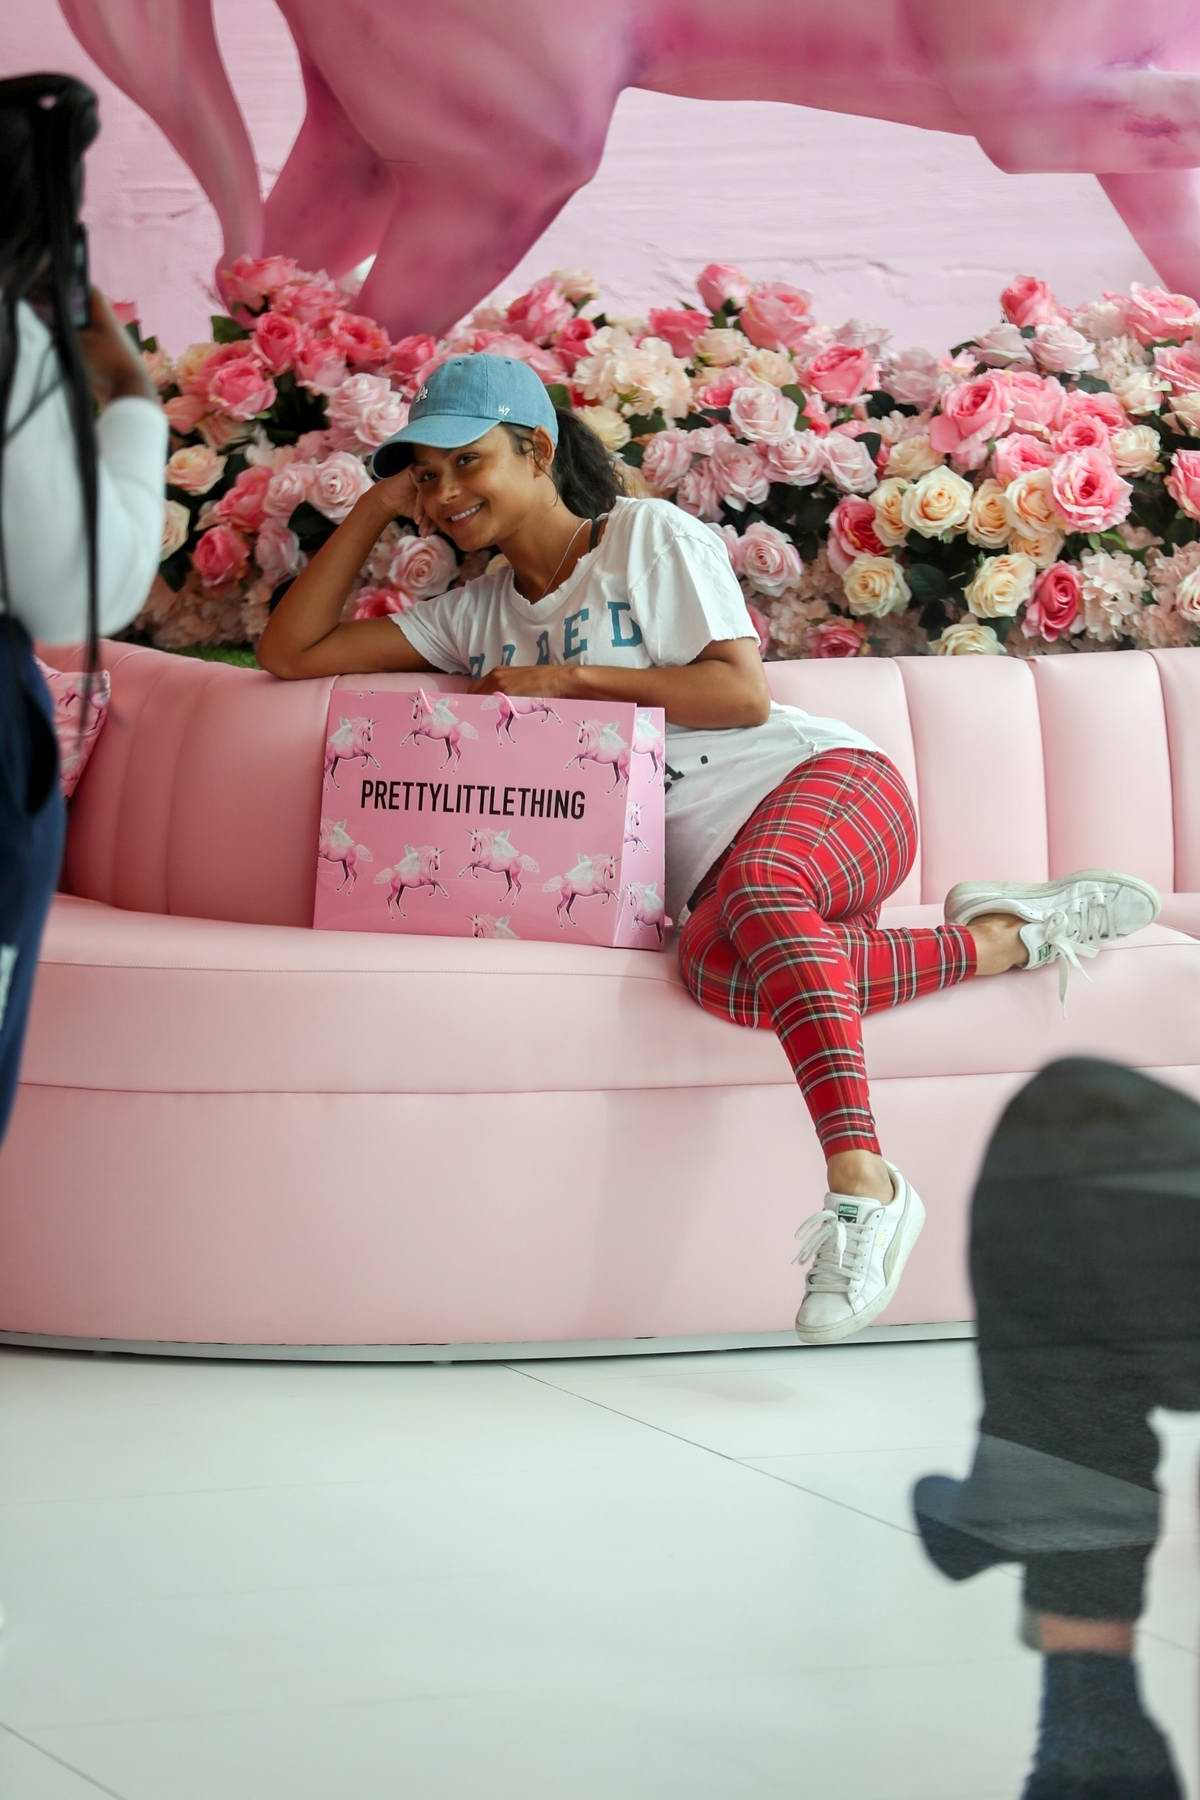 Christina Milian pose for photos while shopping at PrettyLittleThing in West Hollywood, Los Angeles